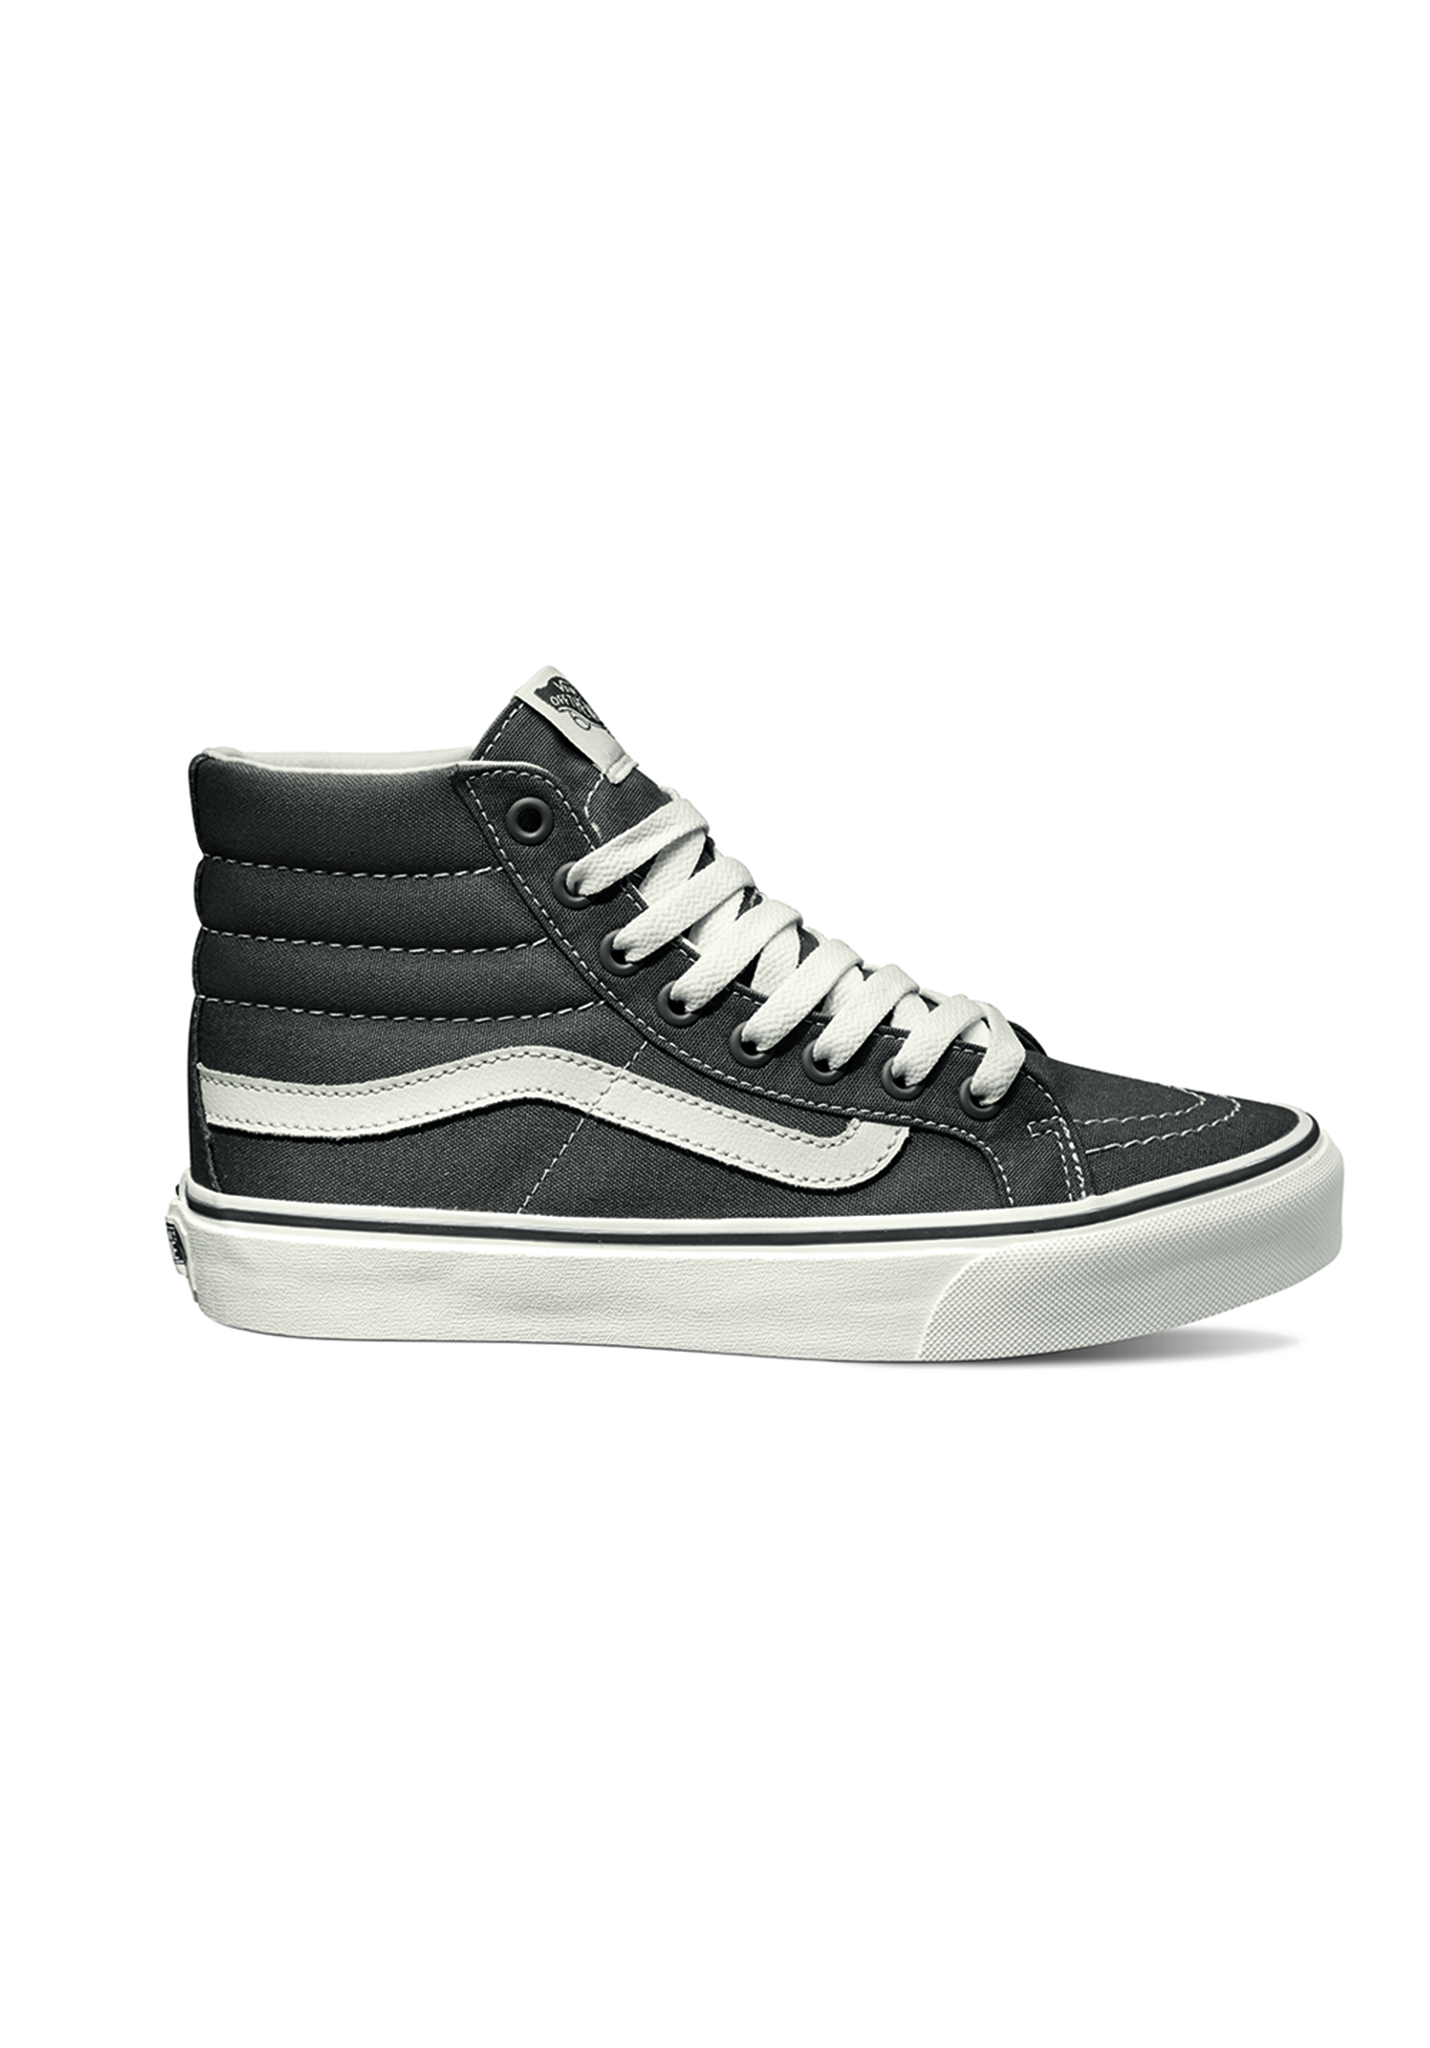 vans sk8 hi slim damen sneaker turnschuhe freizeit schuhe. Black Bedroom Furniture Sets. Home Design Ideas